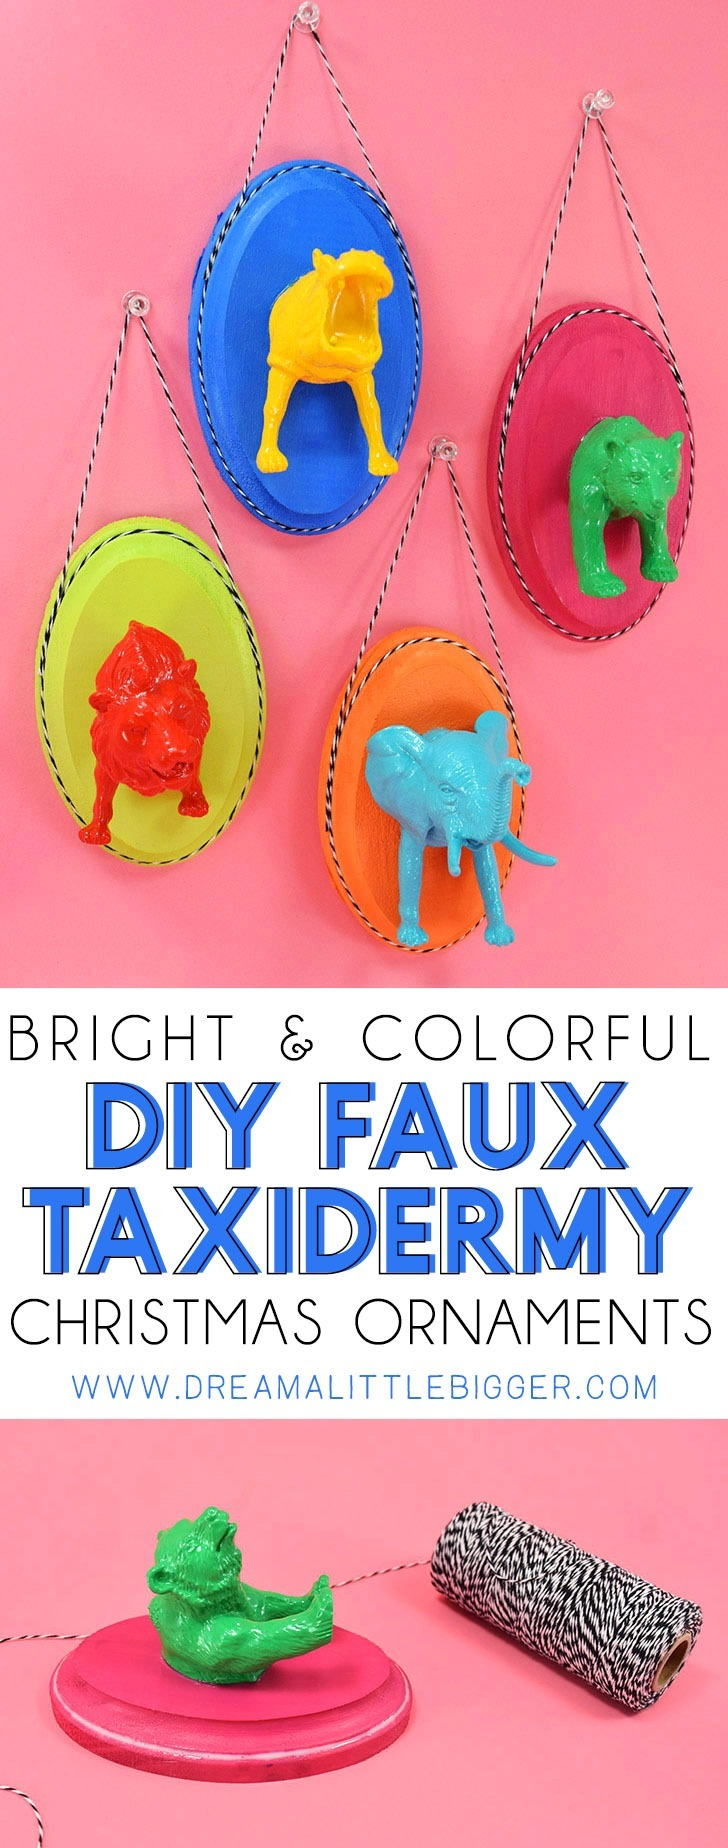 Fun and colorful, these faux taxidermy Christmas ornaments are the perfect way to add a little cute and quirky to your Christmas tree!